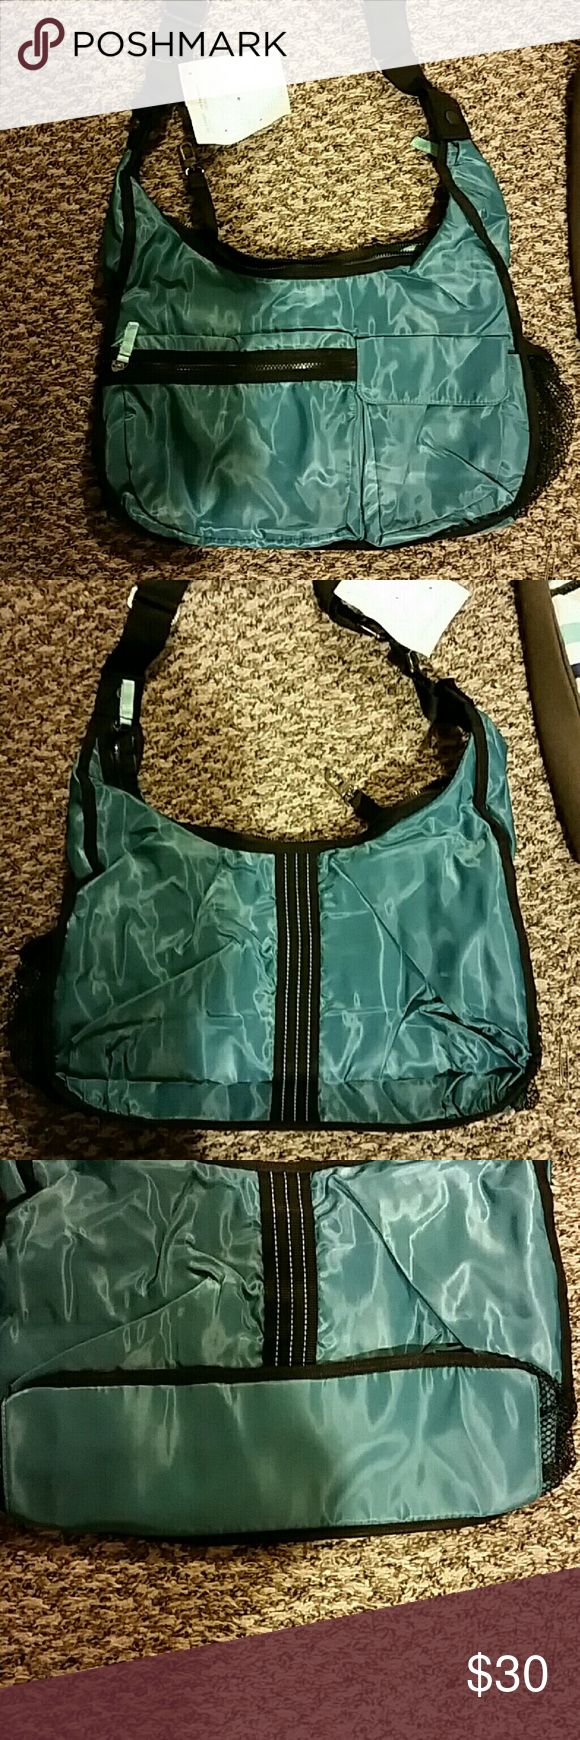 Thirty-one bag nwt Nwt Thirty-one bag. Perfect for the gym or a baby bag or even a purse. Easy to clean adjustable strap and pockets inside and out Thirty-one  Bags Crossbody Bags